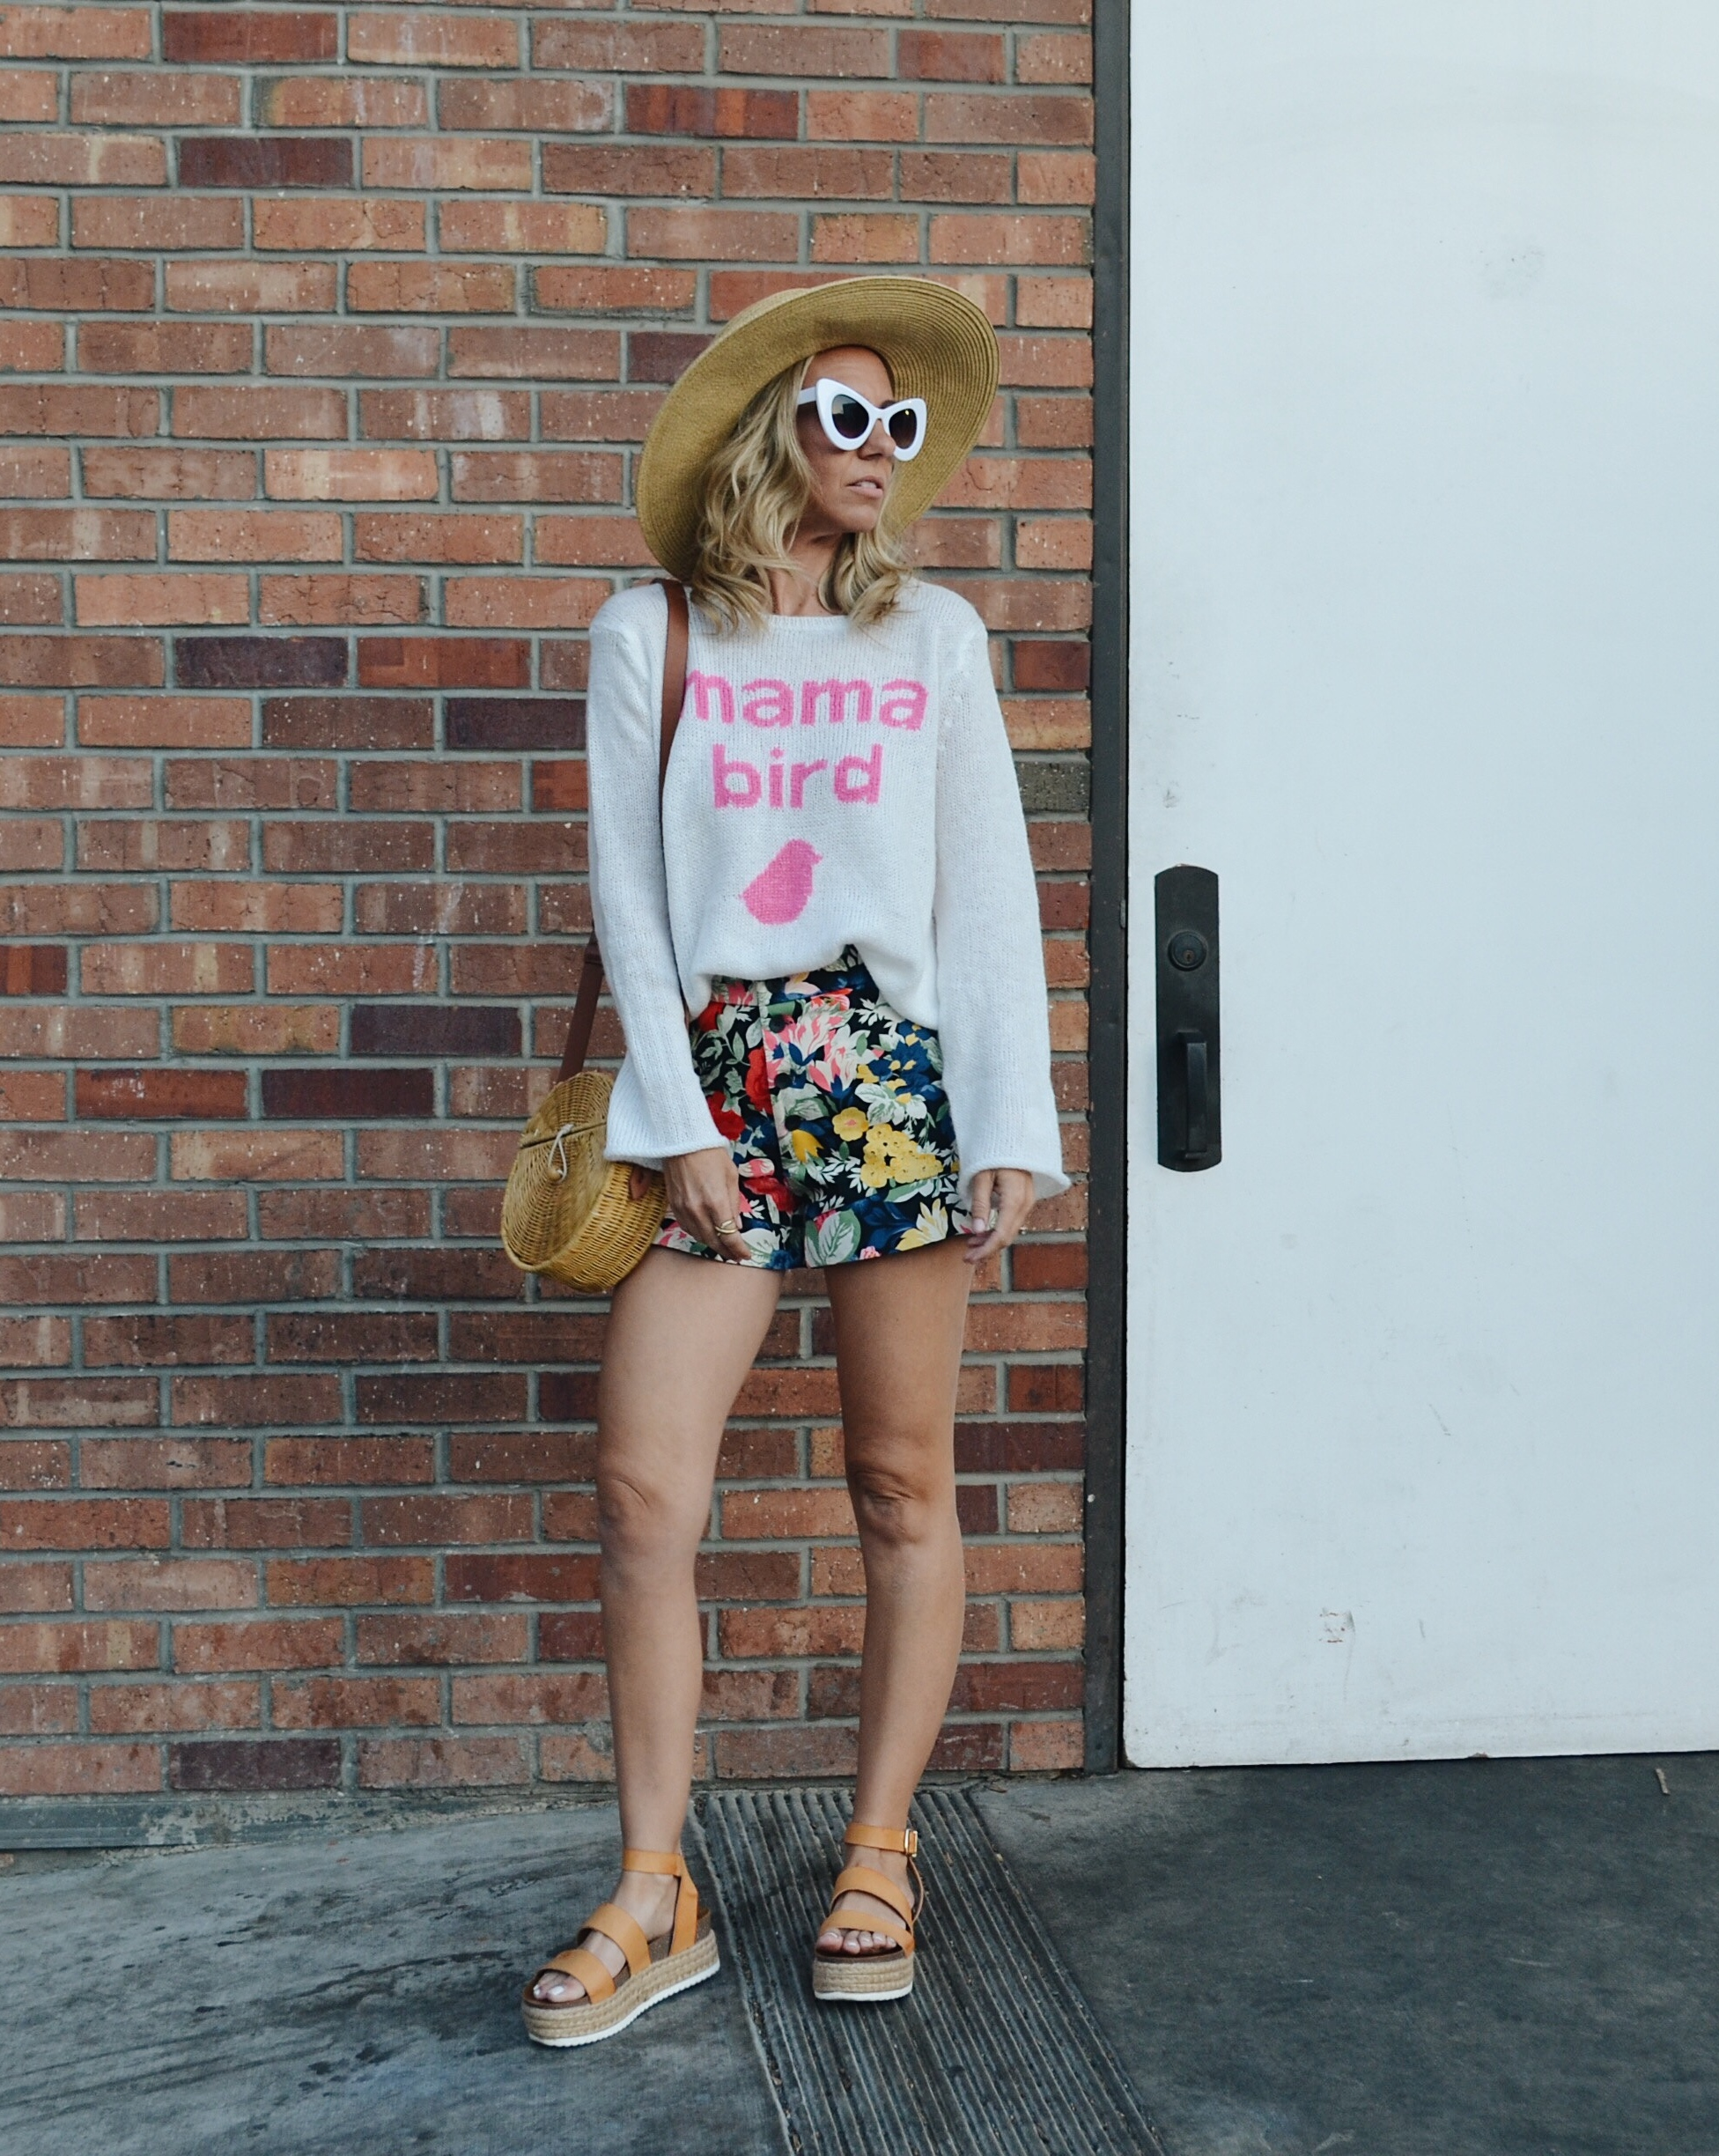 MAMA BIRD SWEATER + FLORAL RUFFLE SHORTS + STRAW BAG + STRAW HAT + RETRO STYLE SUNGLASSES + PLATFORM SANDALS